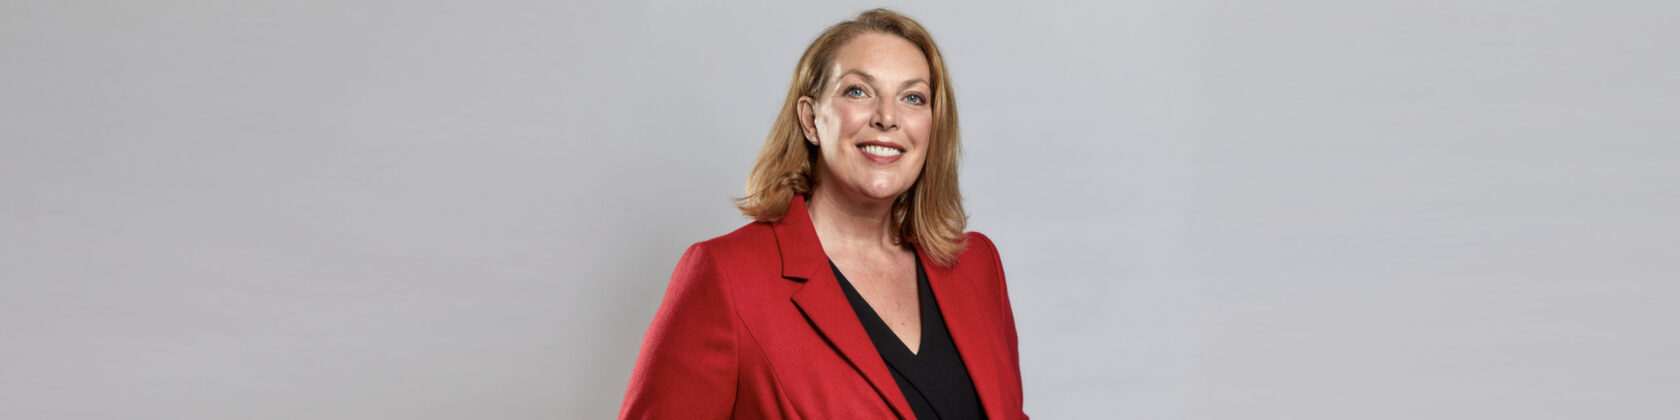 Portrait image of Judith Hartley on a grey background